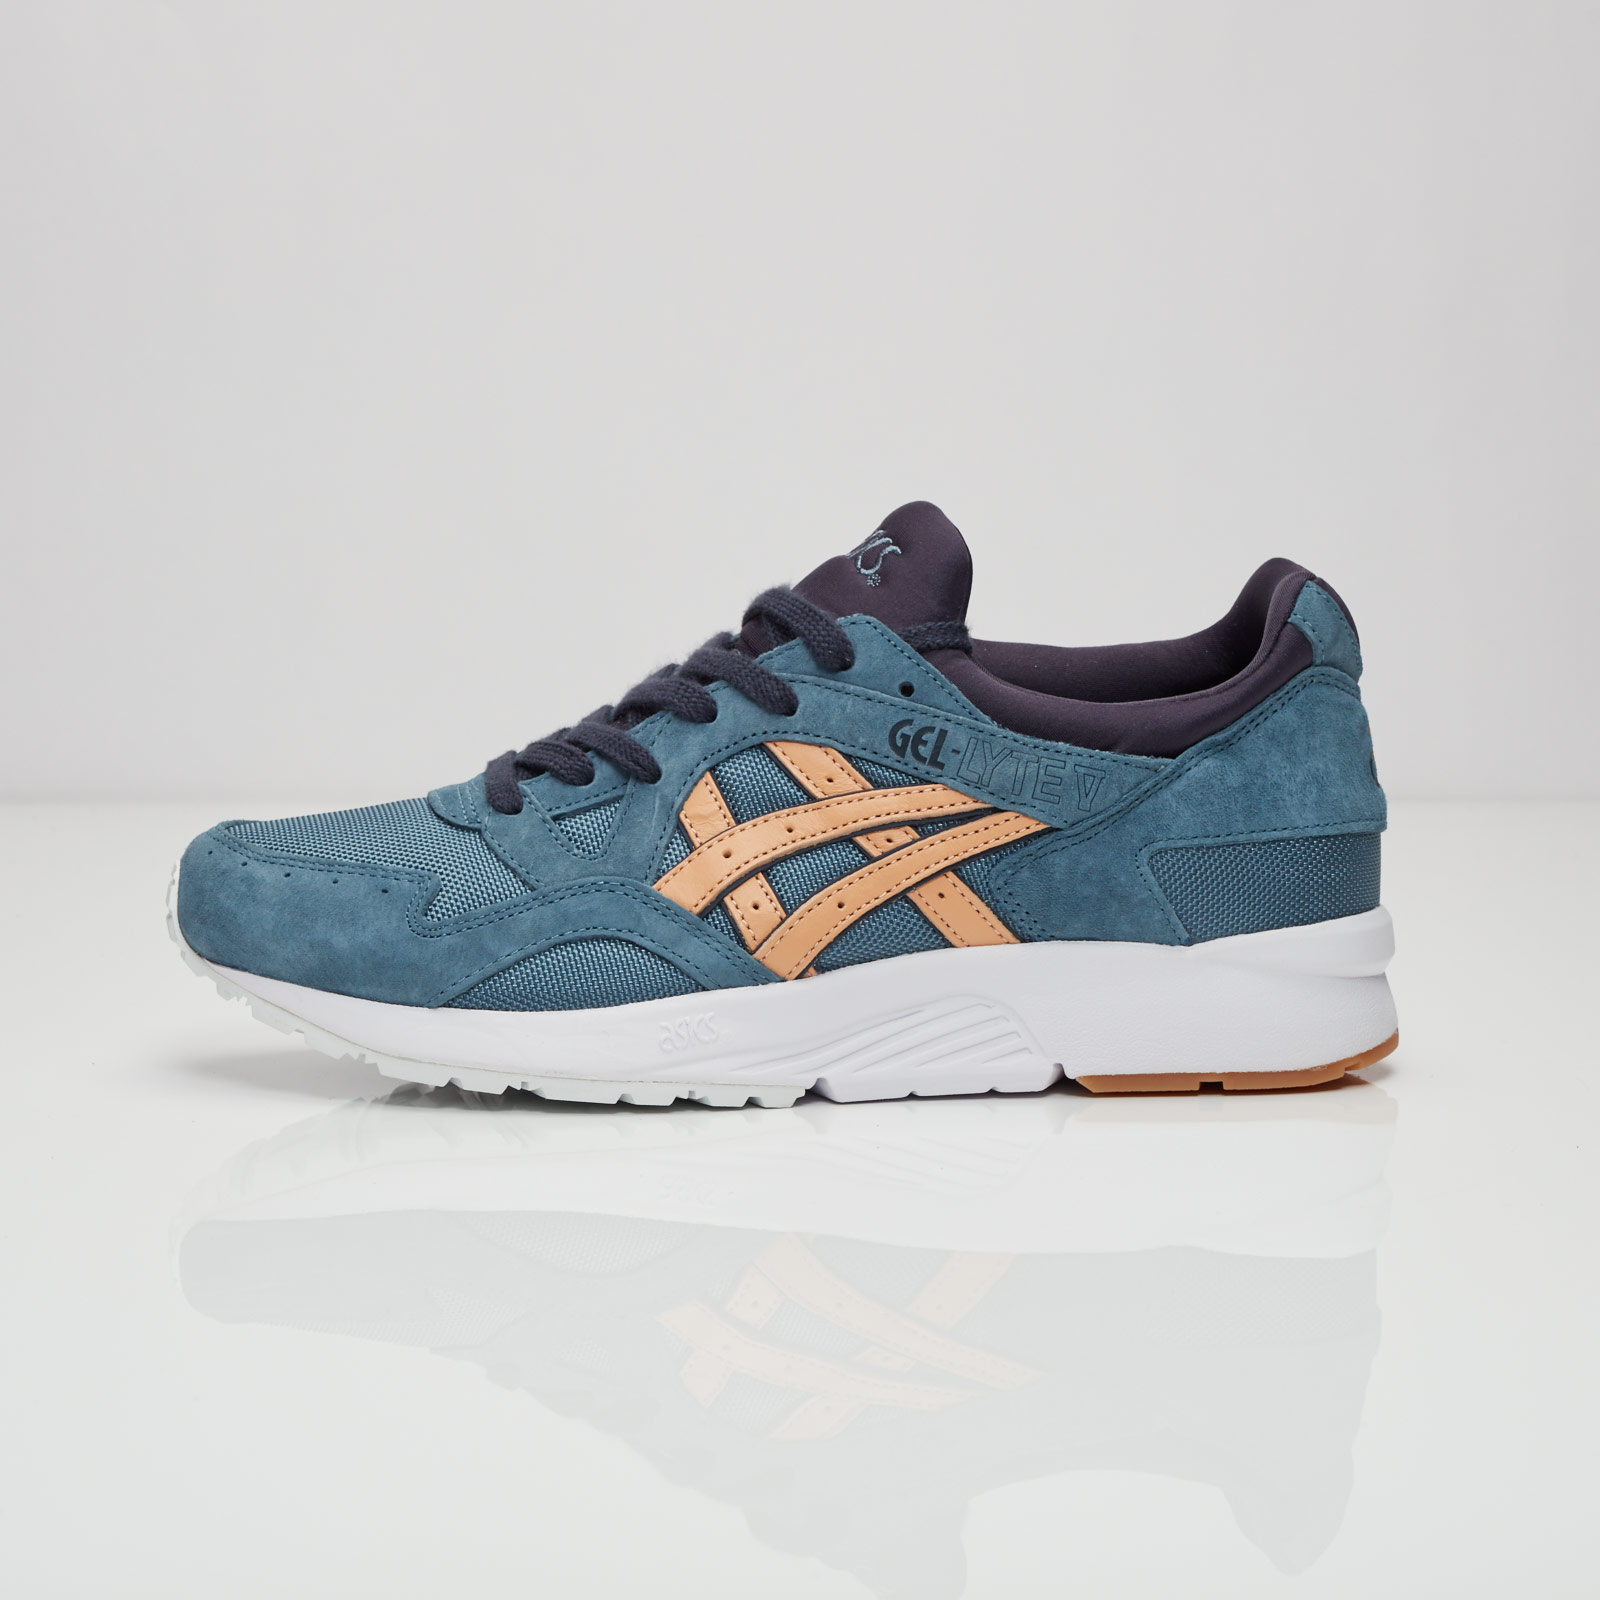 finest selection d261d de16a ASICS Tiger Gel-Lyte V - H6q3n-4605 - Sneakersnstuff ...